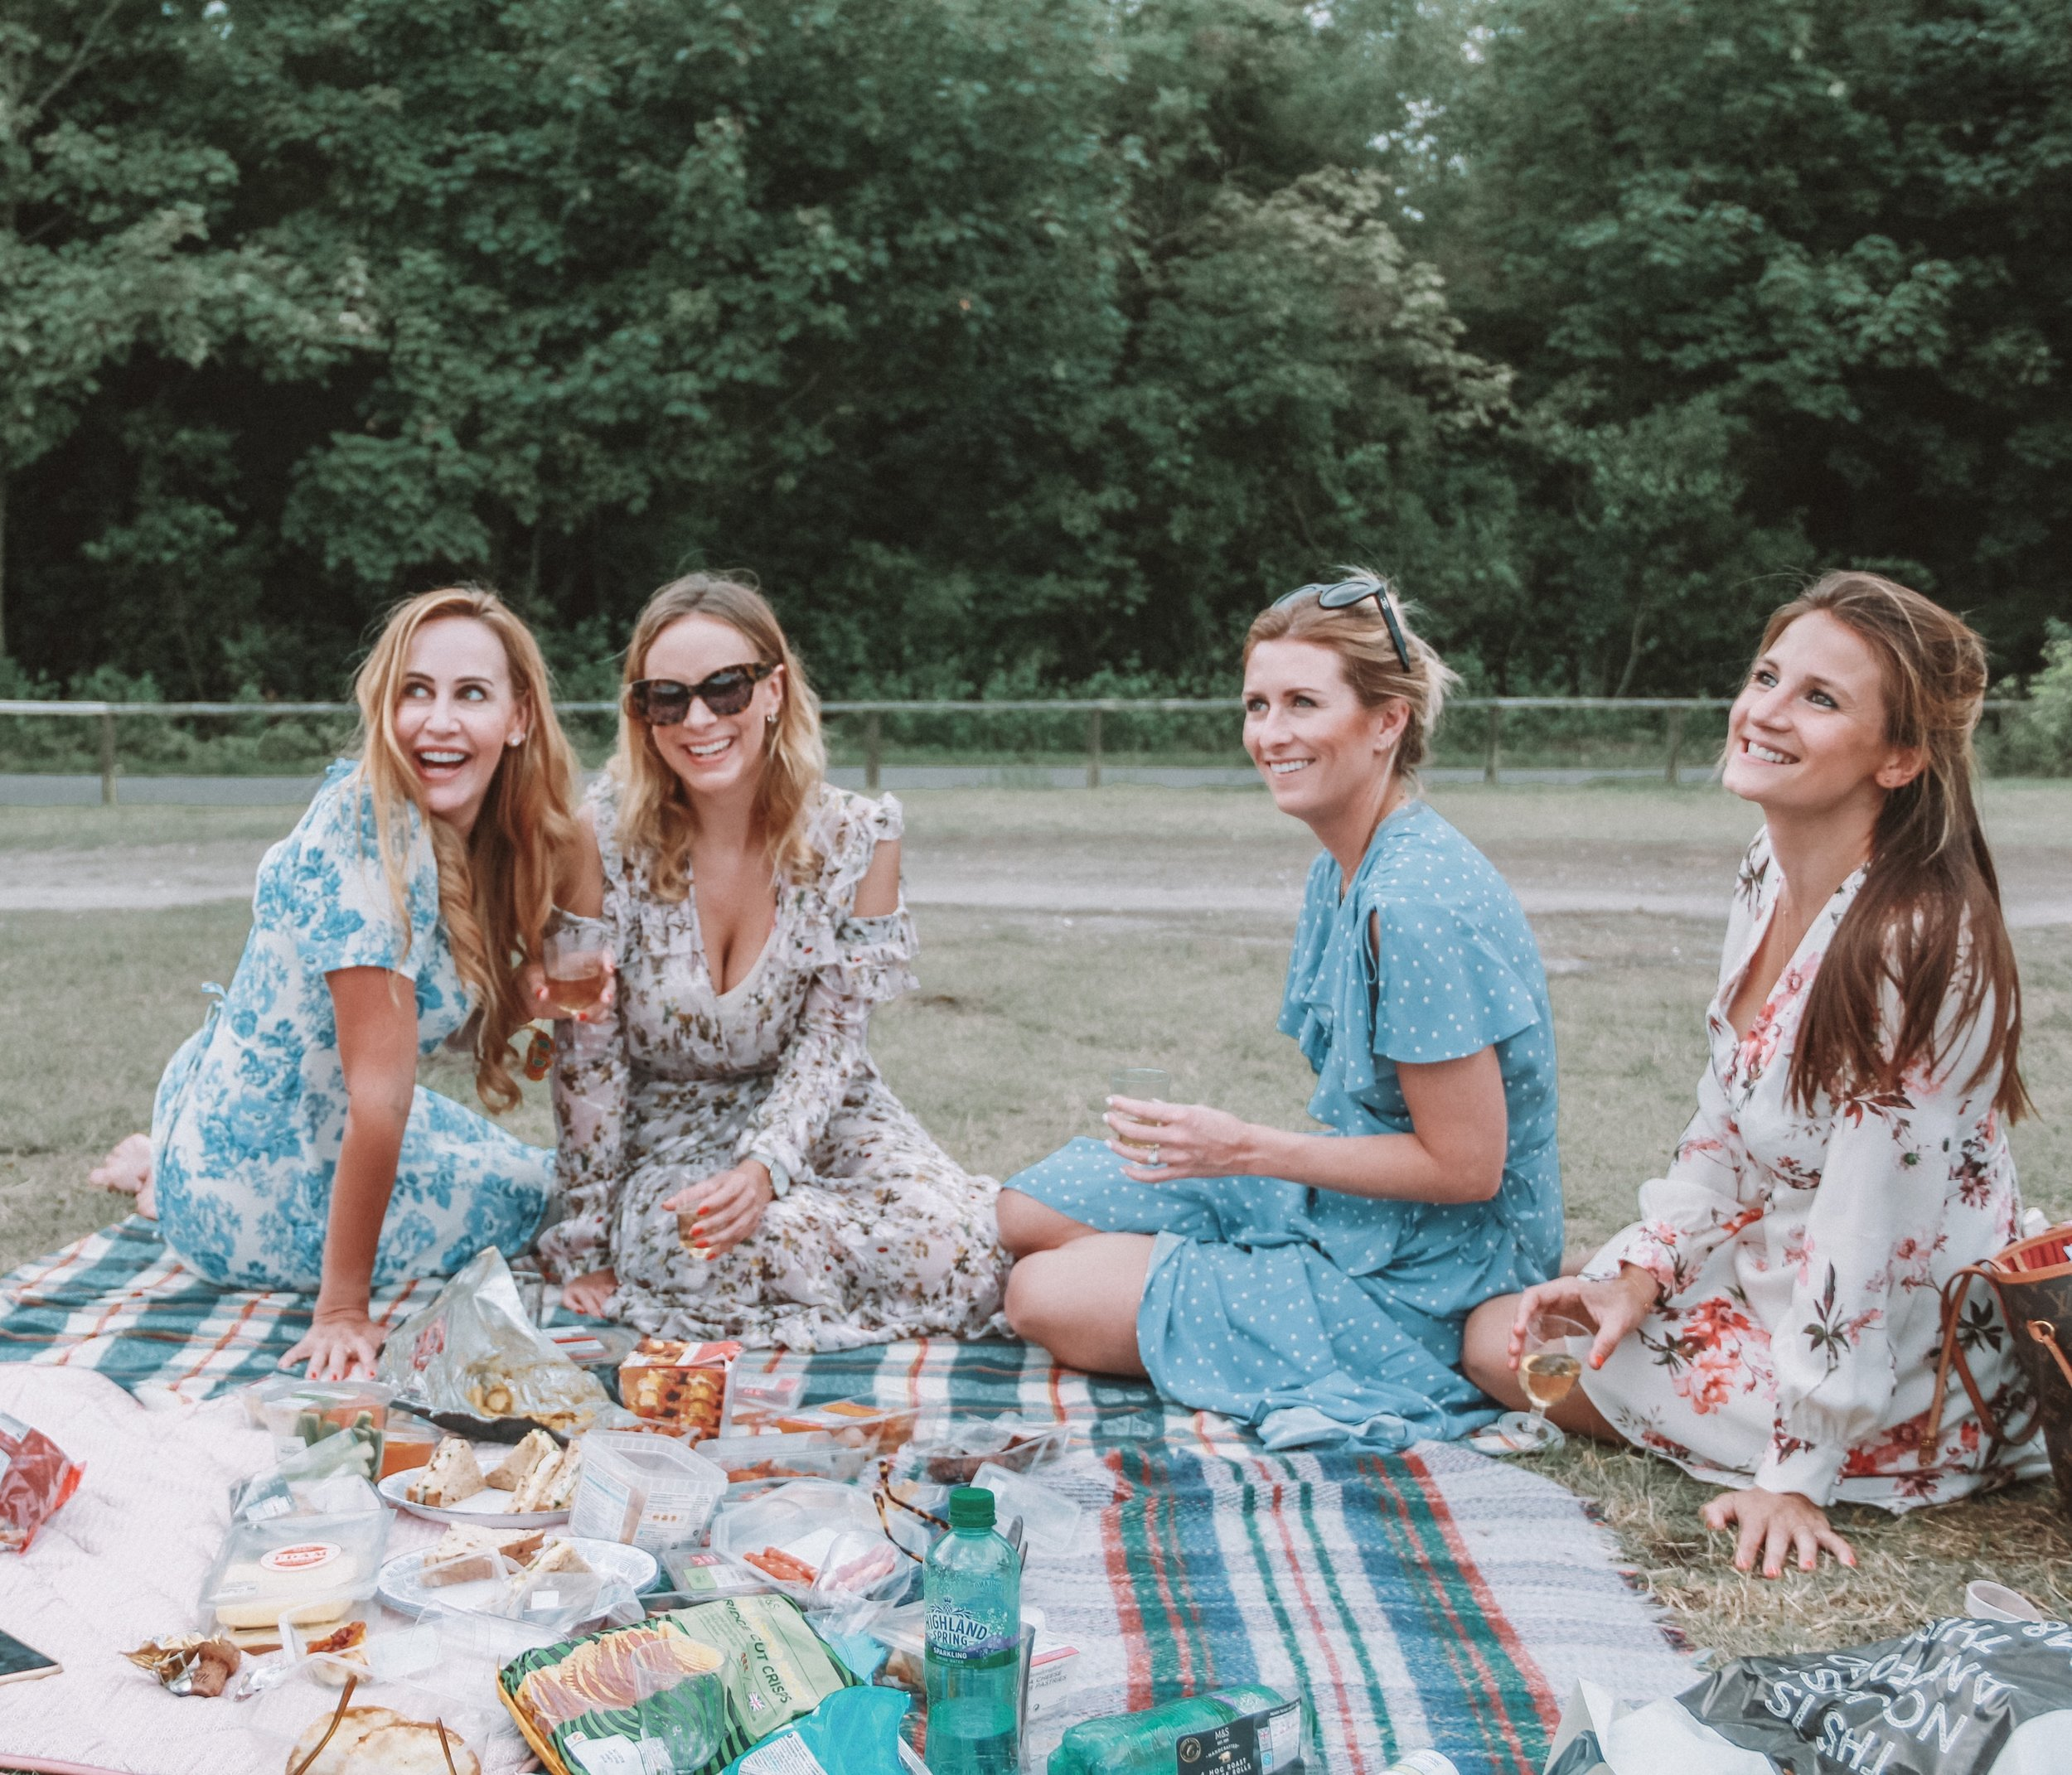 Me, my sister Lucy (in Preen) and sisters-in-law Cat (in Miss Selfridge) and Cath (in The Kooples) picnicking at Goodwood racecourse